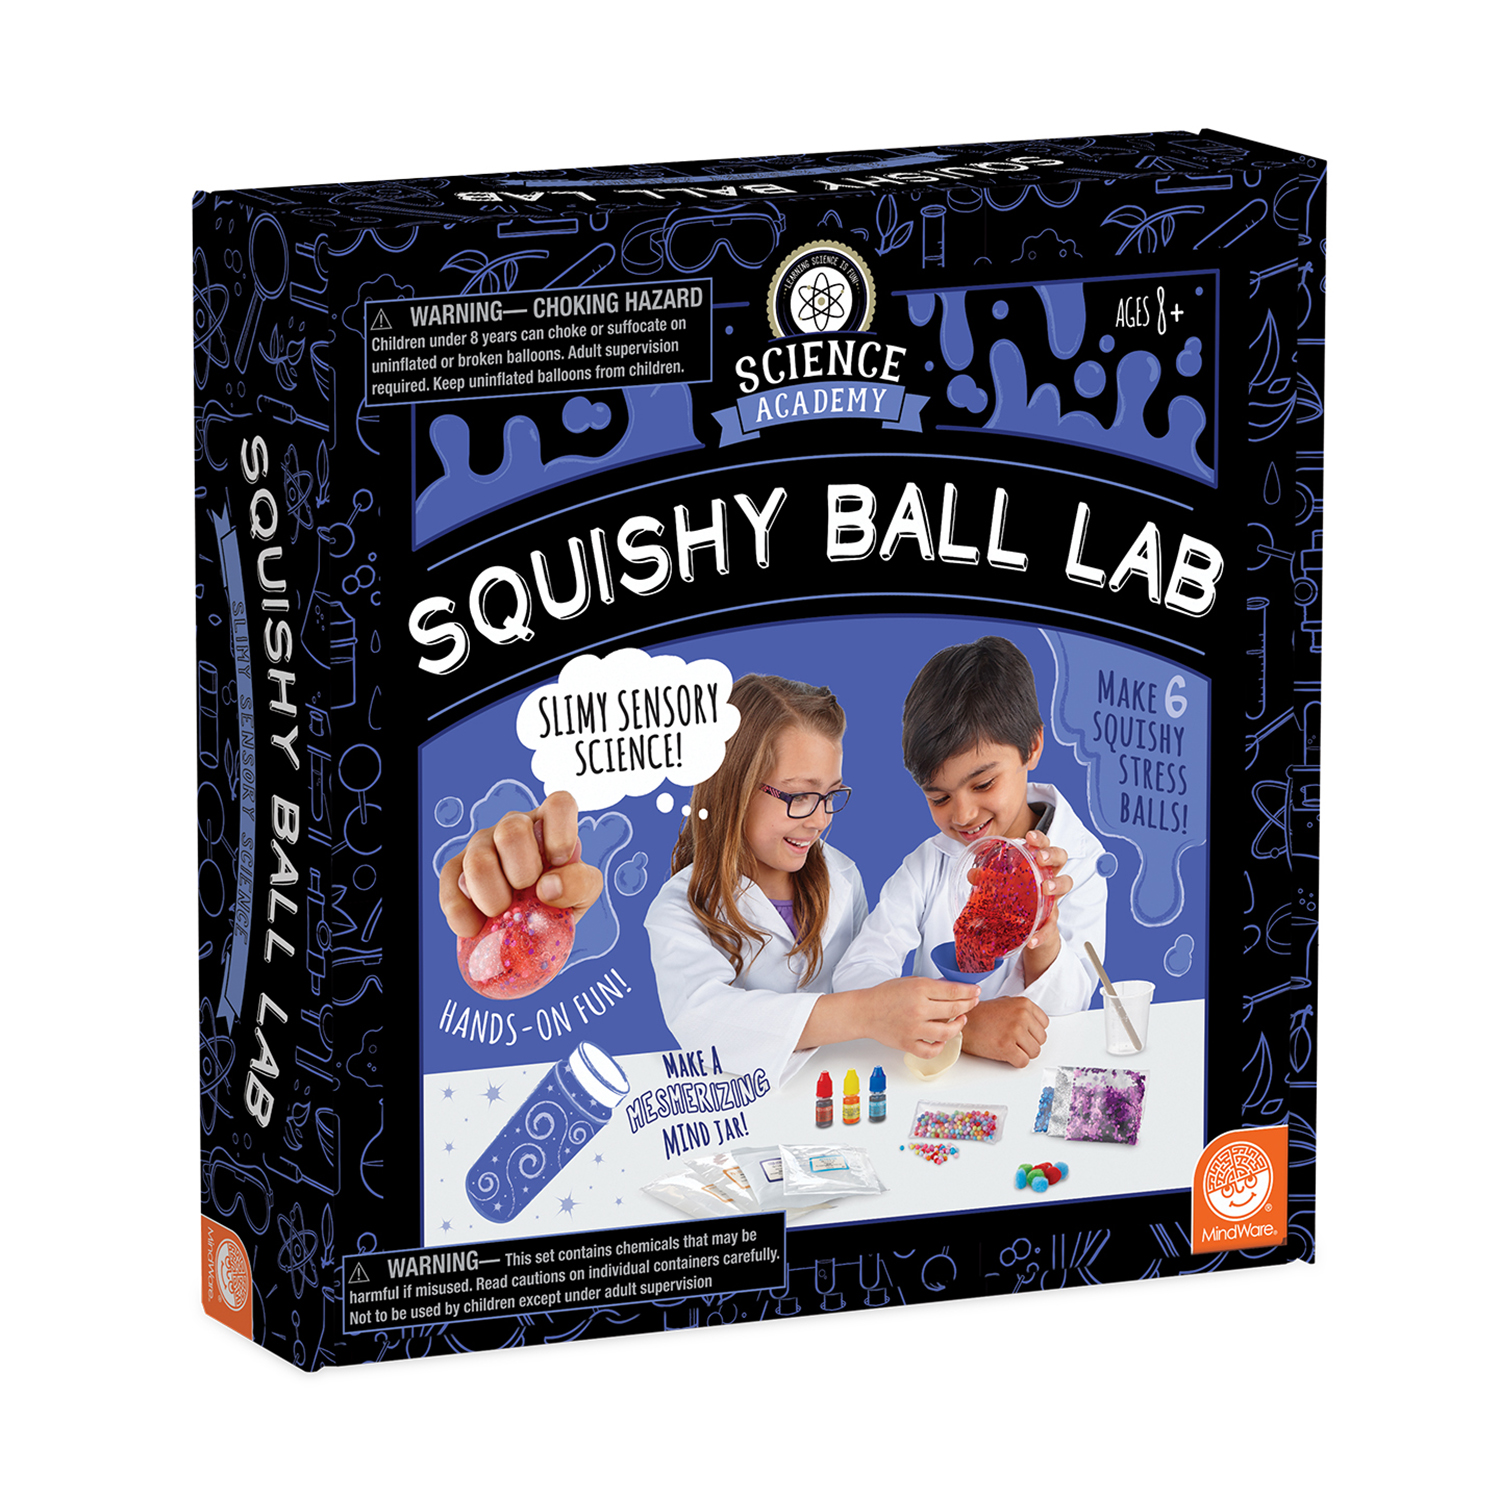 Science Academy: Squishy Ball Lab